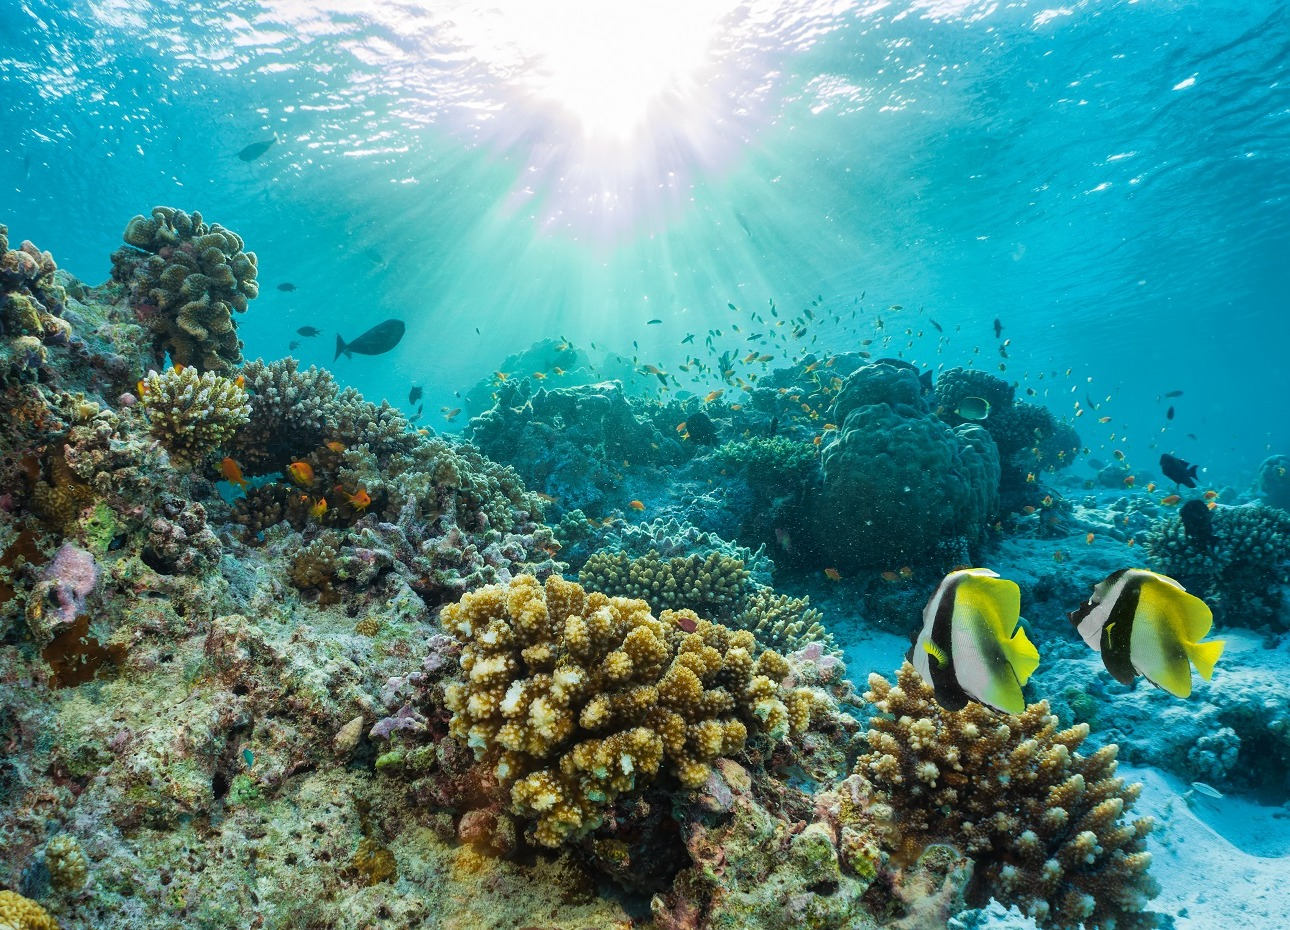 Exploring the reefs of the Indian Ocean, Maldives